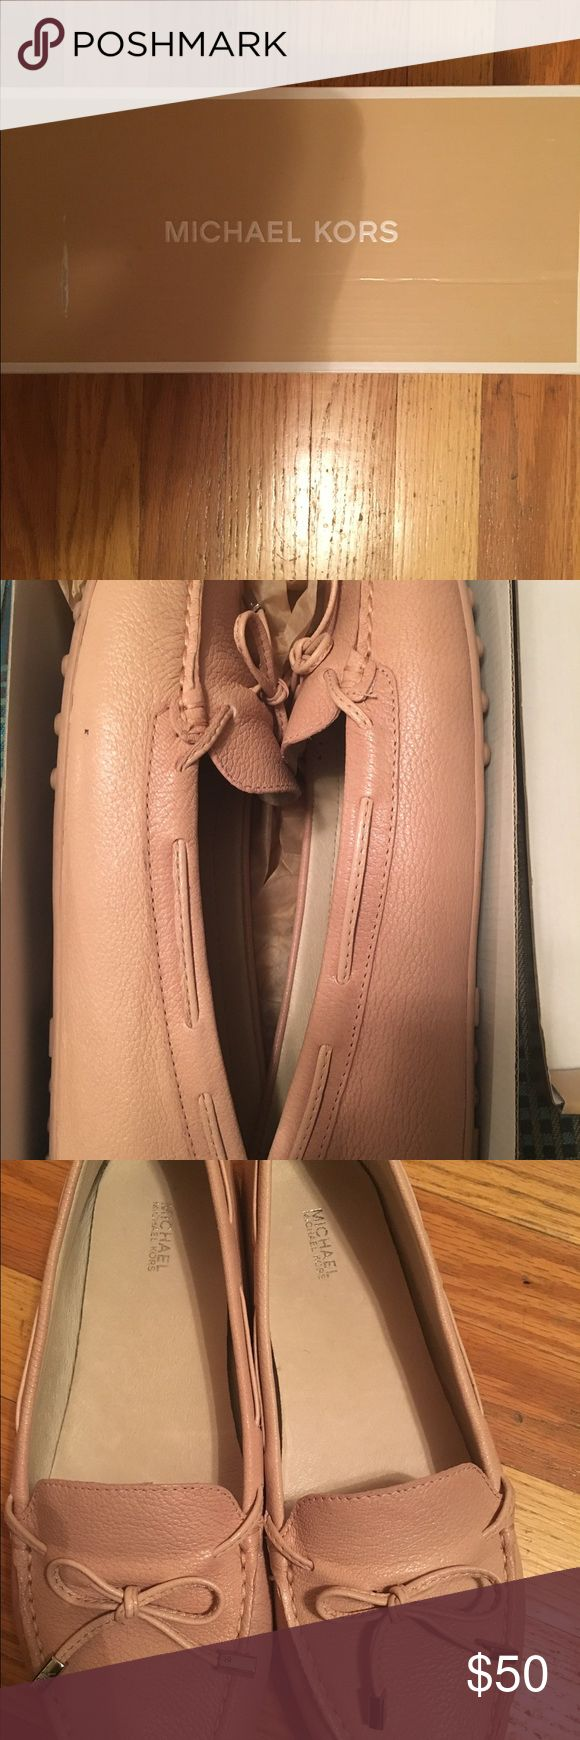 Michael Kors flats Soft pink Michael Kors flats. Size 11. Wore them twice. Purchased from Macy's. Comes with original box. Selling because I have no more room for shoes. Hopefully they can find a good home! No scuffs on the shoes. Michael Kors Shoes Flats & Loafers